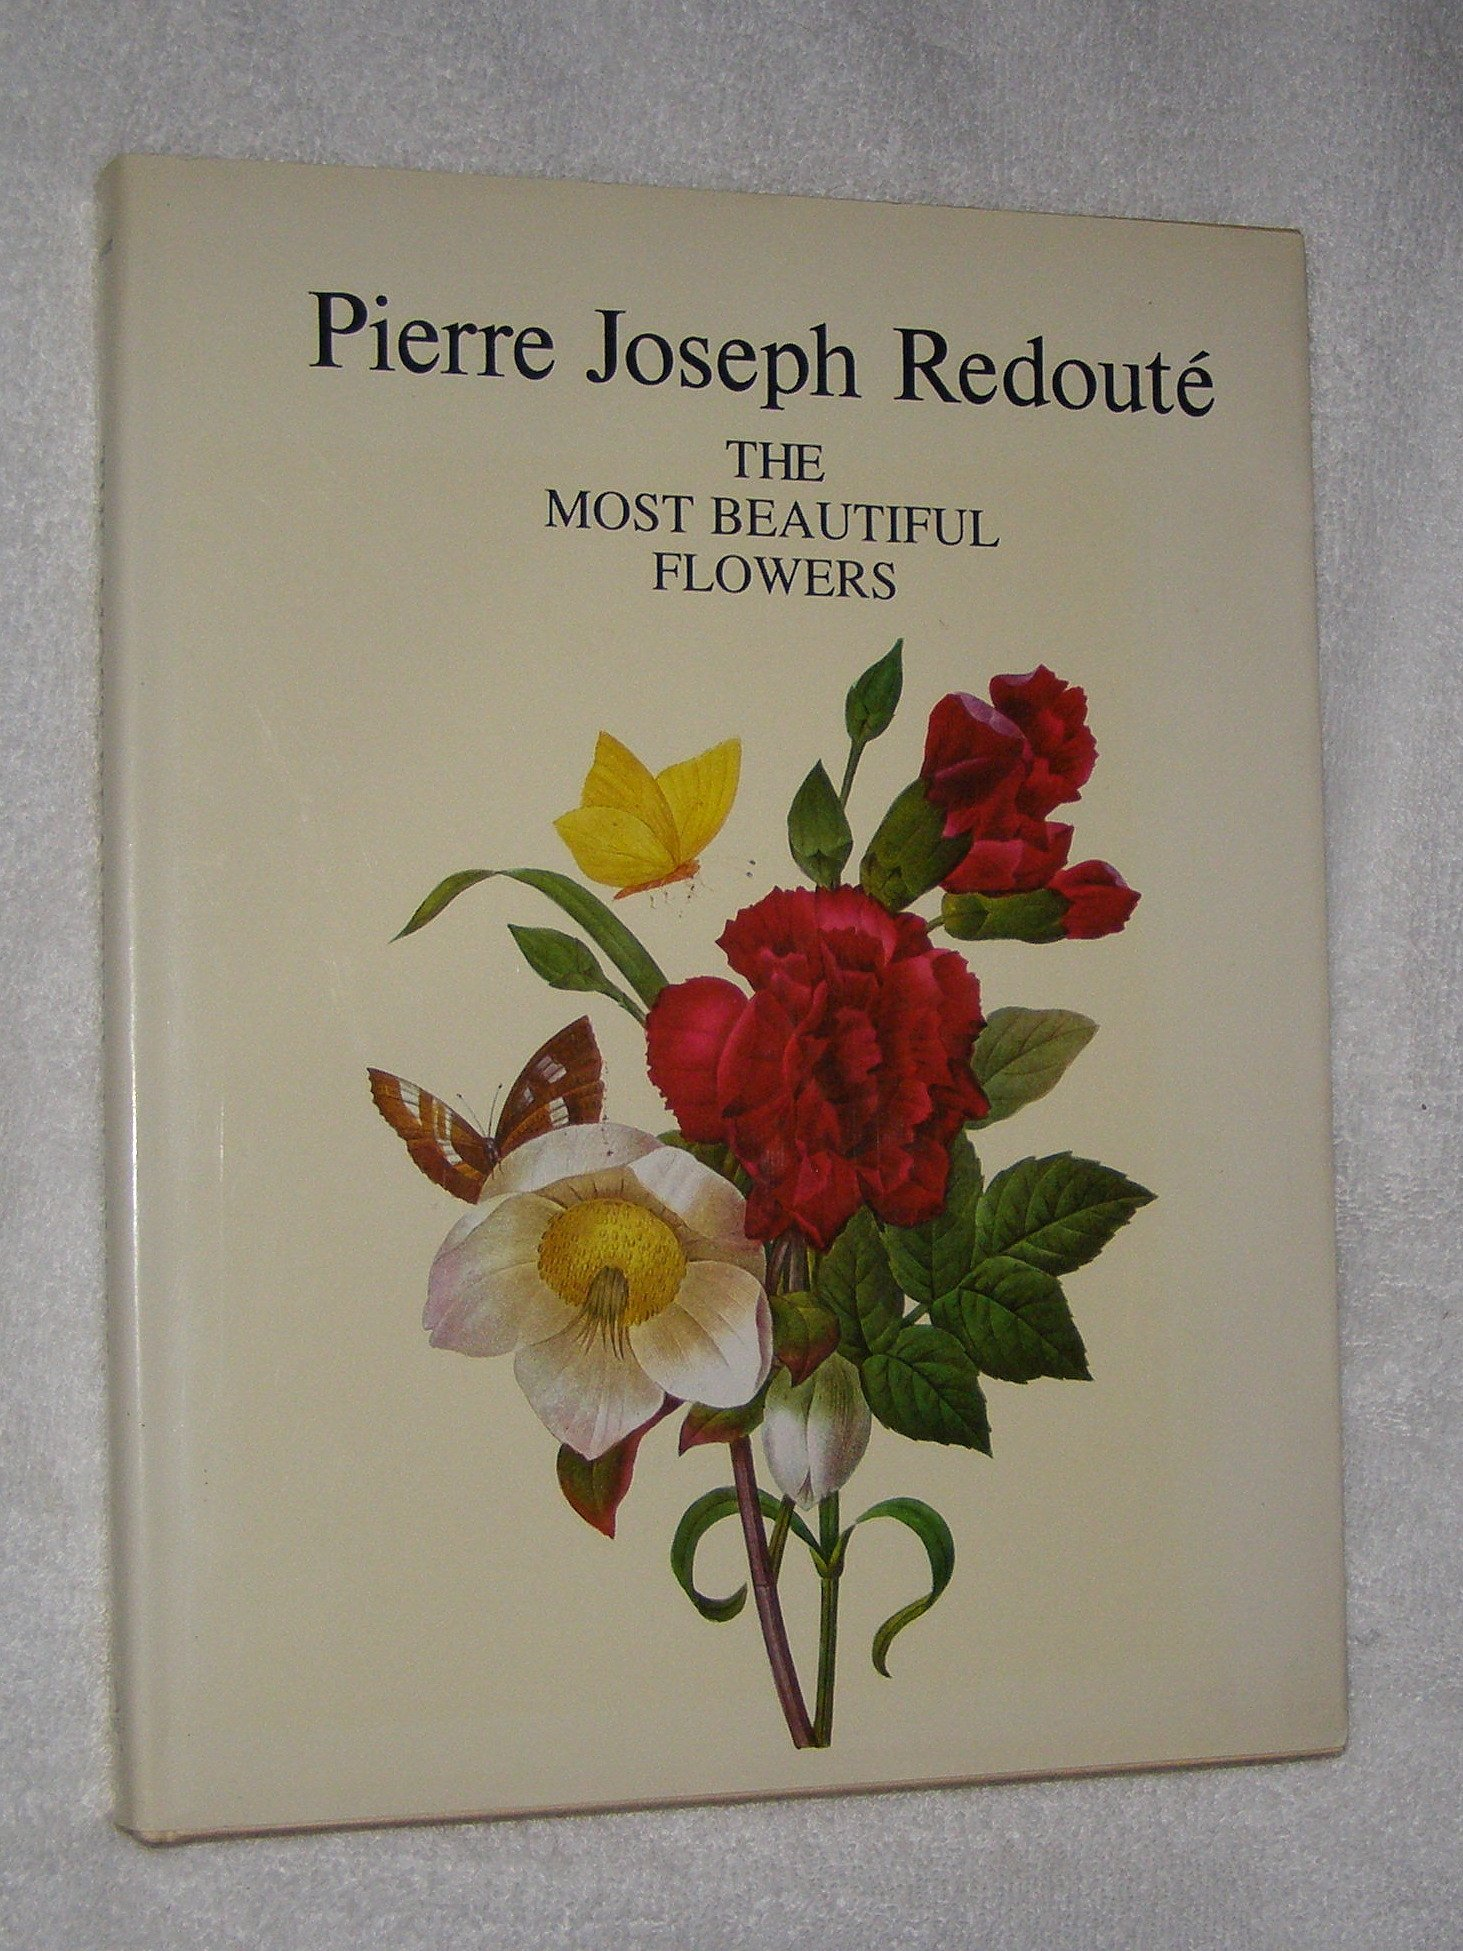 The most beautiful flowers pierre j redoute 9781555212544 amazon the most beautiful flowers pierre j redoute 9781555212544 amazon books izmirmasajfo